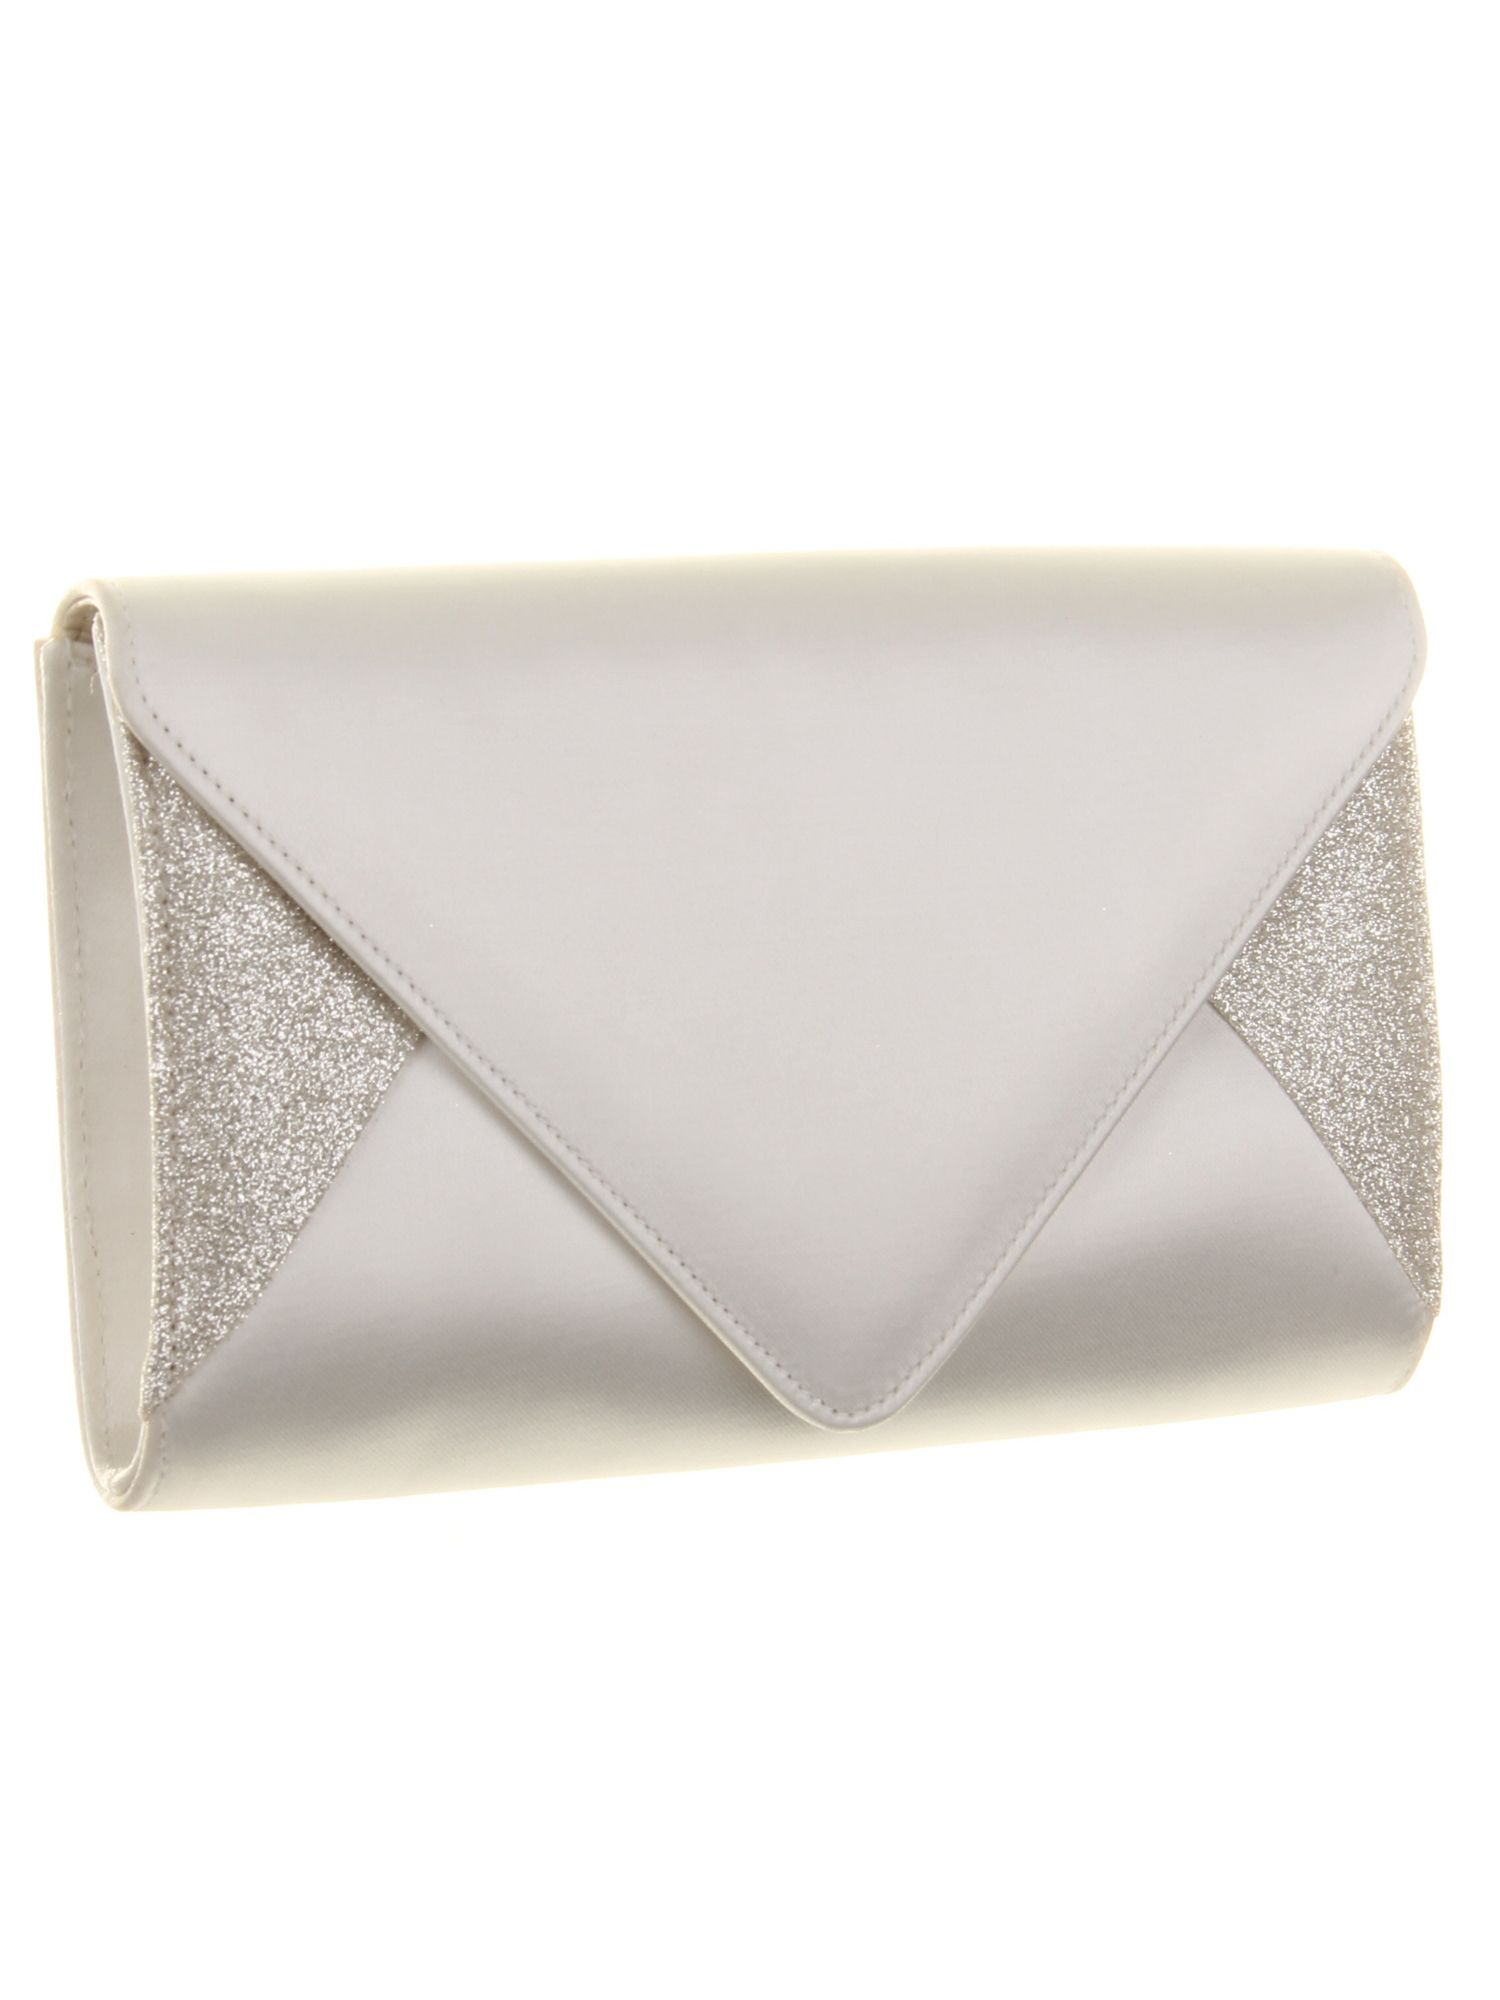 Diane clutch bag